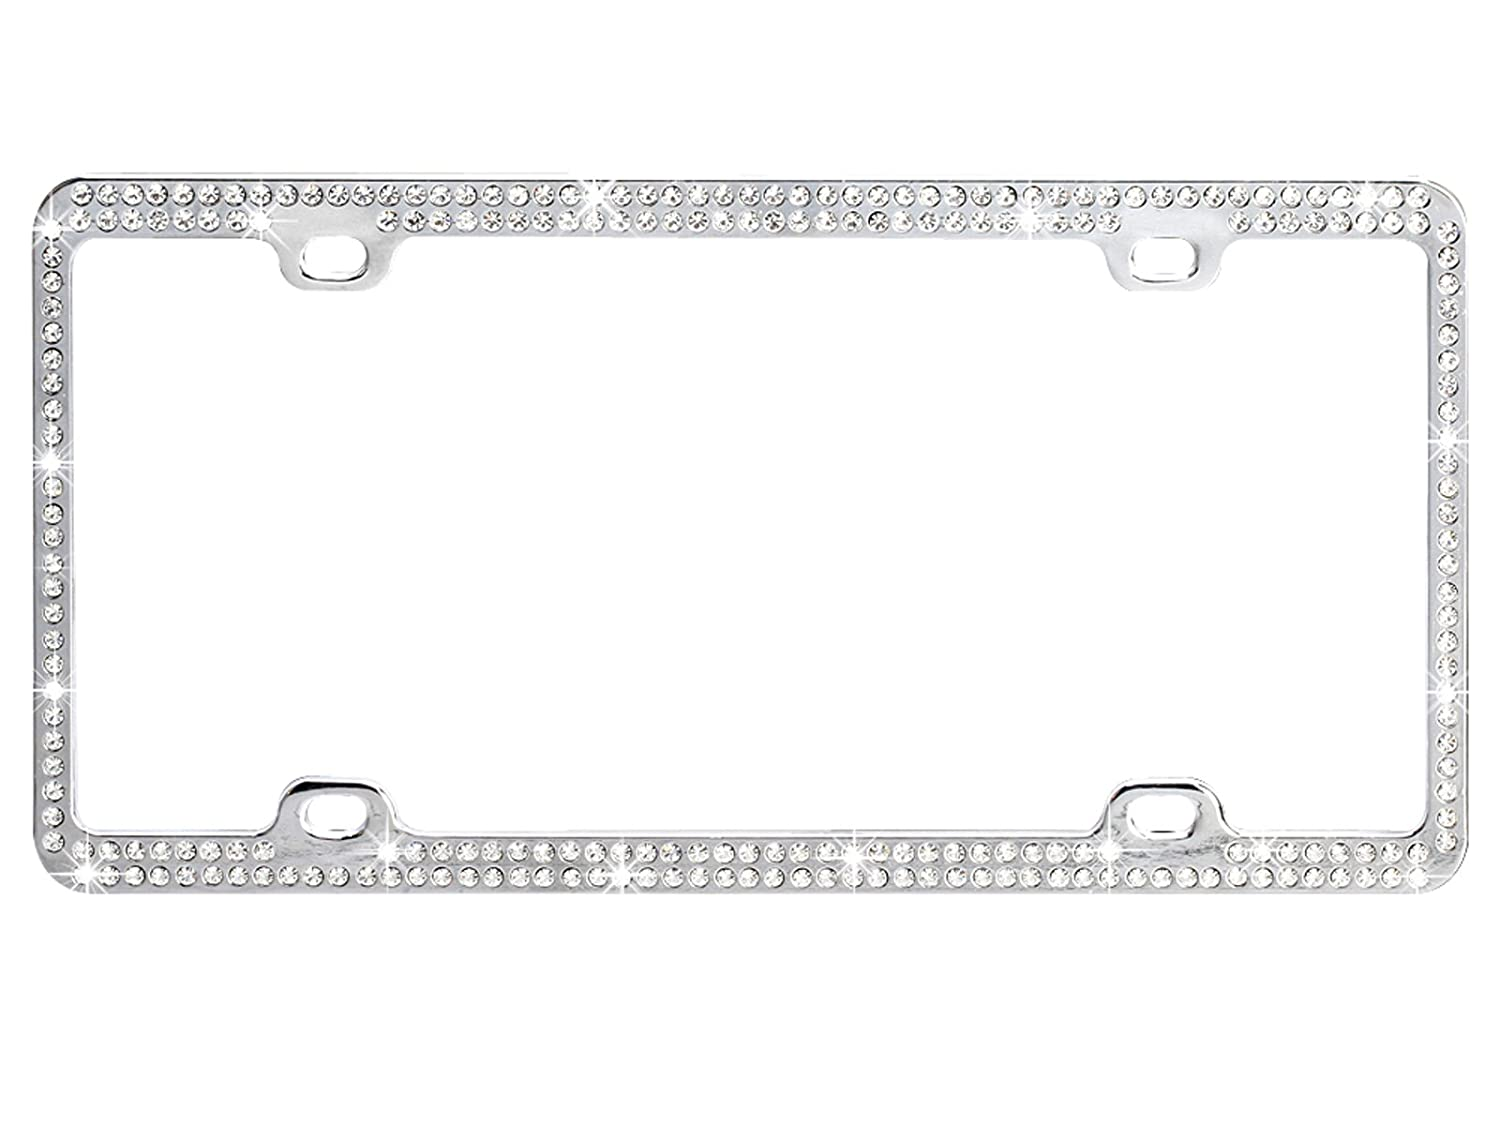 Amazon.com: Chrome Metal Car License Plate Frame with Double Row ...